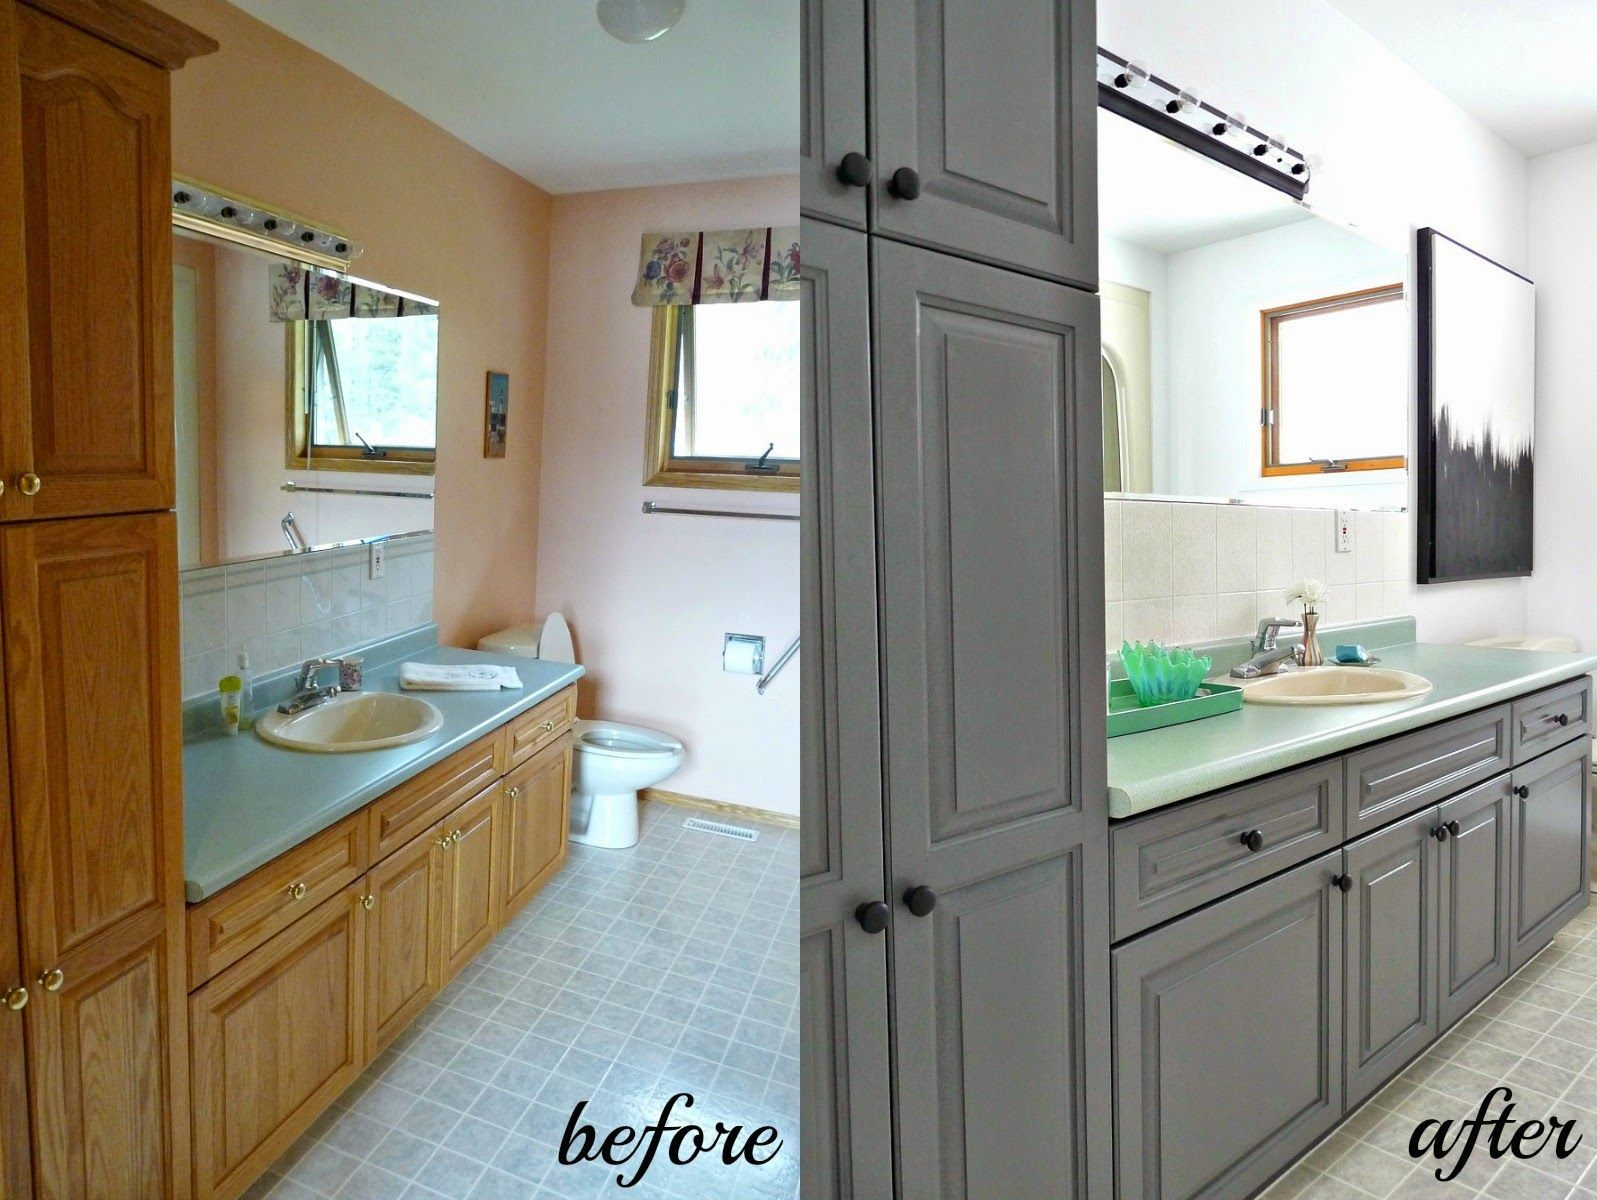 Cabinet Refinishing Latex Paint Vs Stain Vs RustOleum - Bathroom and kitchen resurfacing for bathroom decor ideas